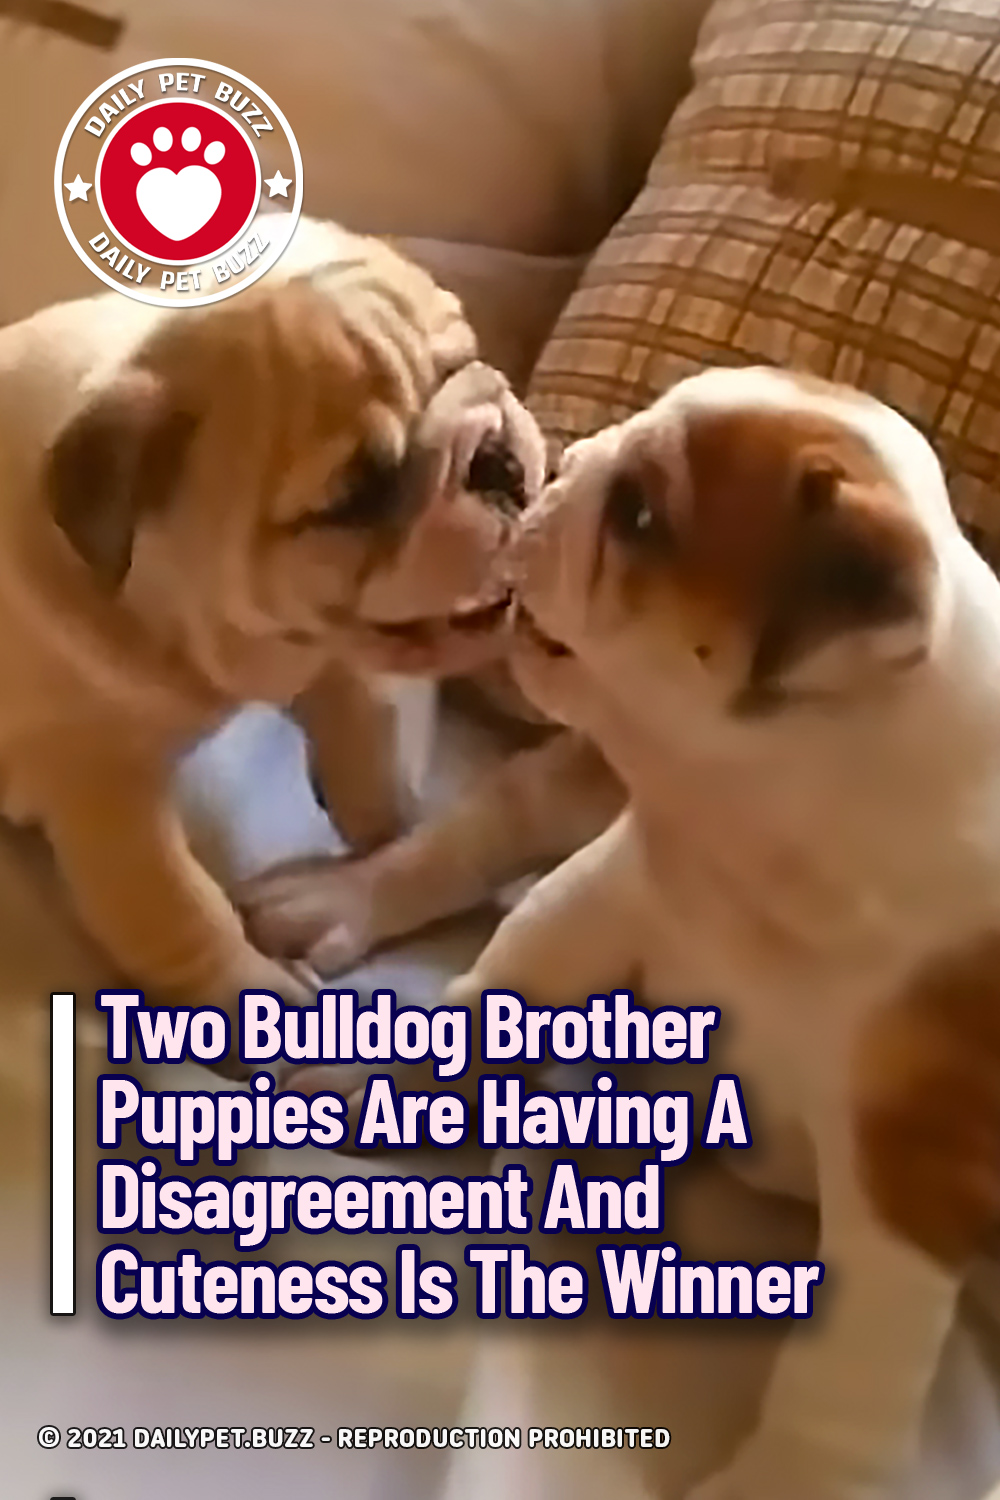 Two Bulldog Brother Puppies Are Having A Disagreement And Cuteness Is The Winner